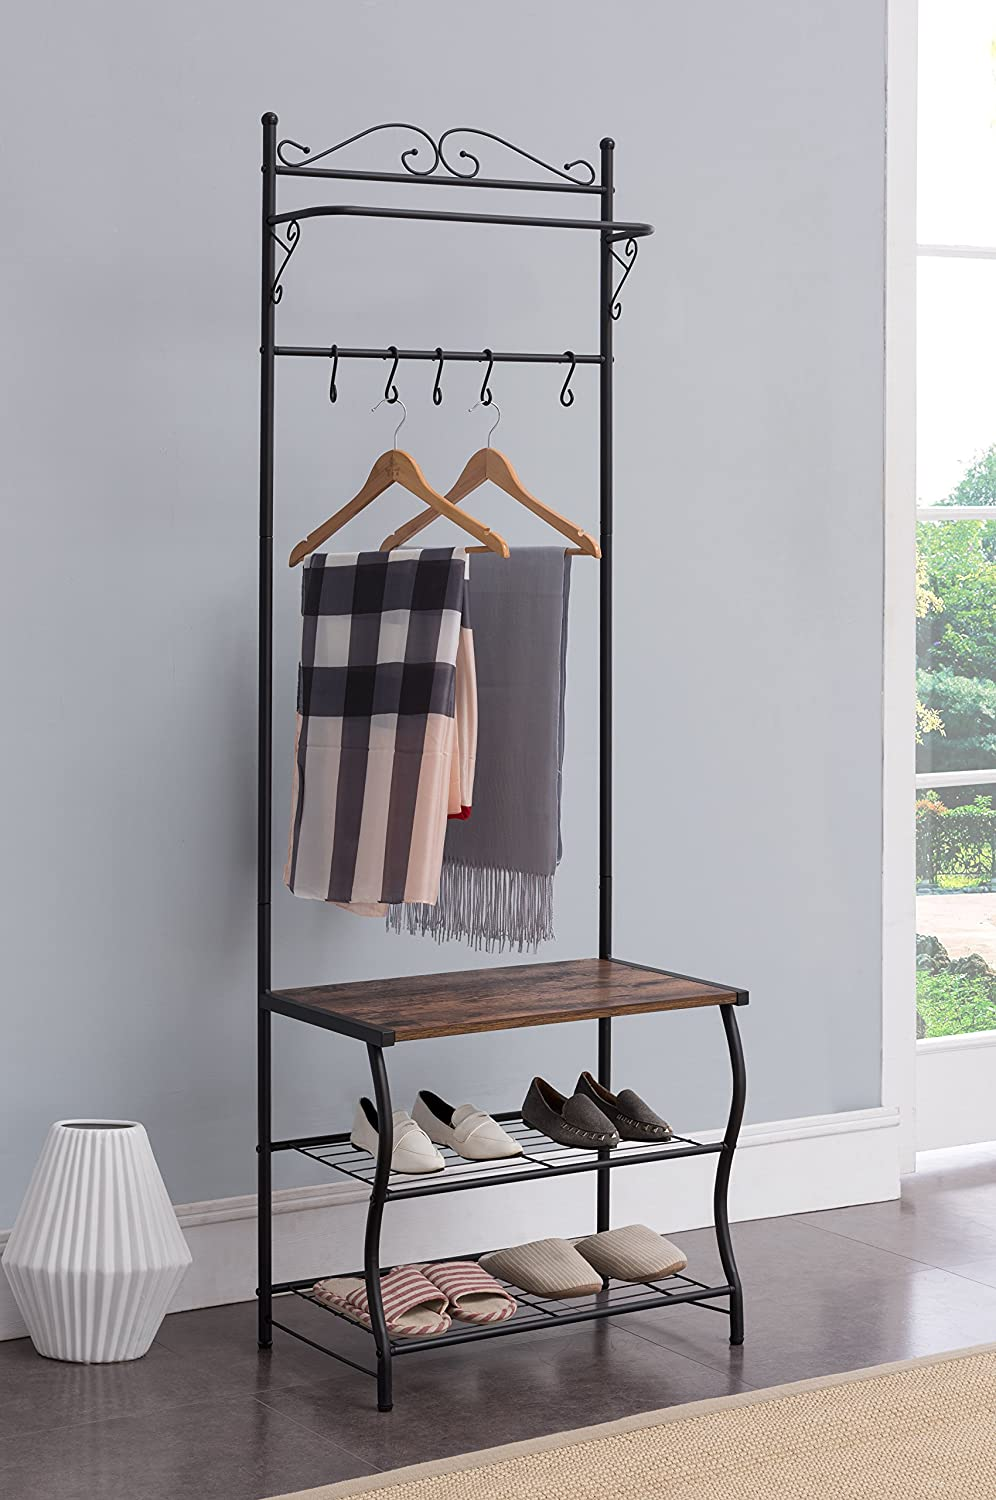 Kings Brand Furniture - Entryway Shoe Bench, Coat Rack, Hall Tree Storage Organizer with Hooks M03